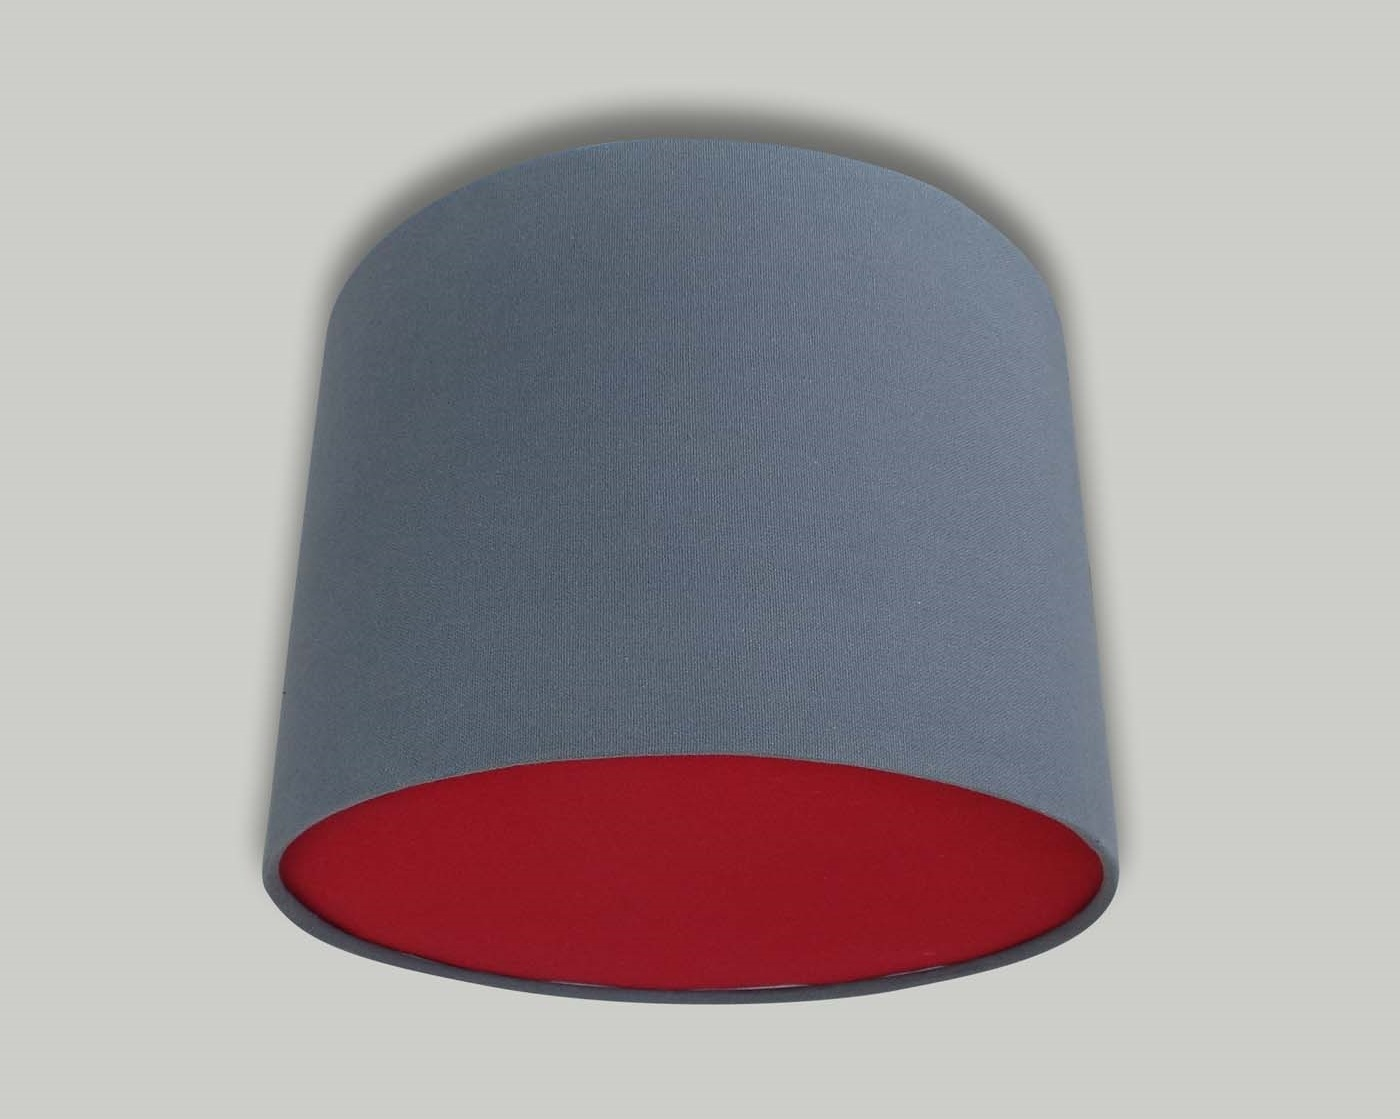 Dark Grey Ceiling Drum Lampshade Red Diffuser The